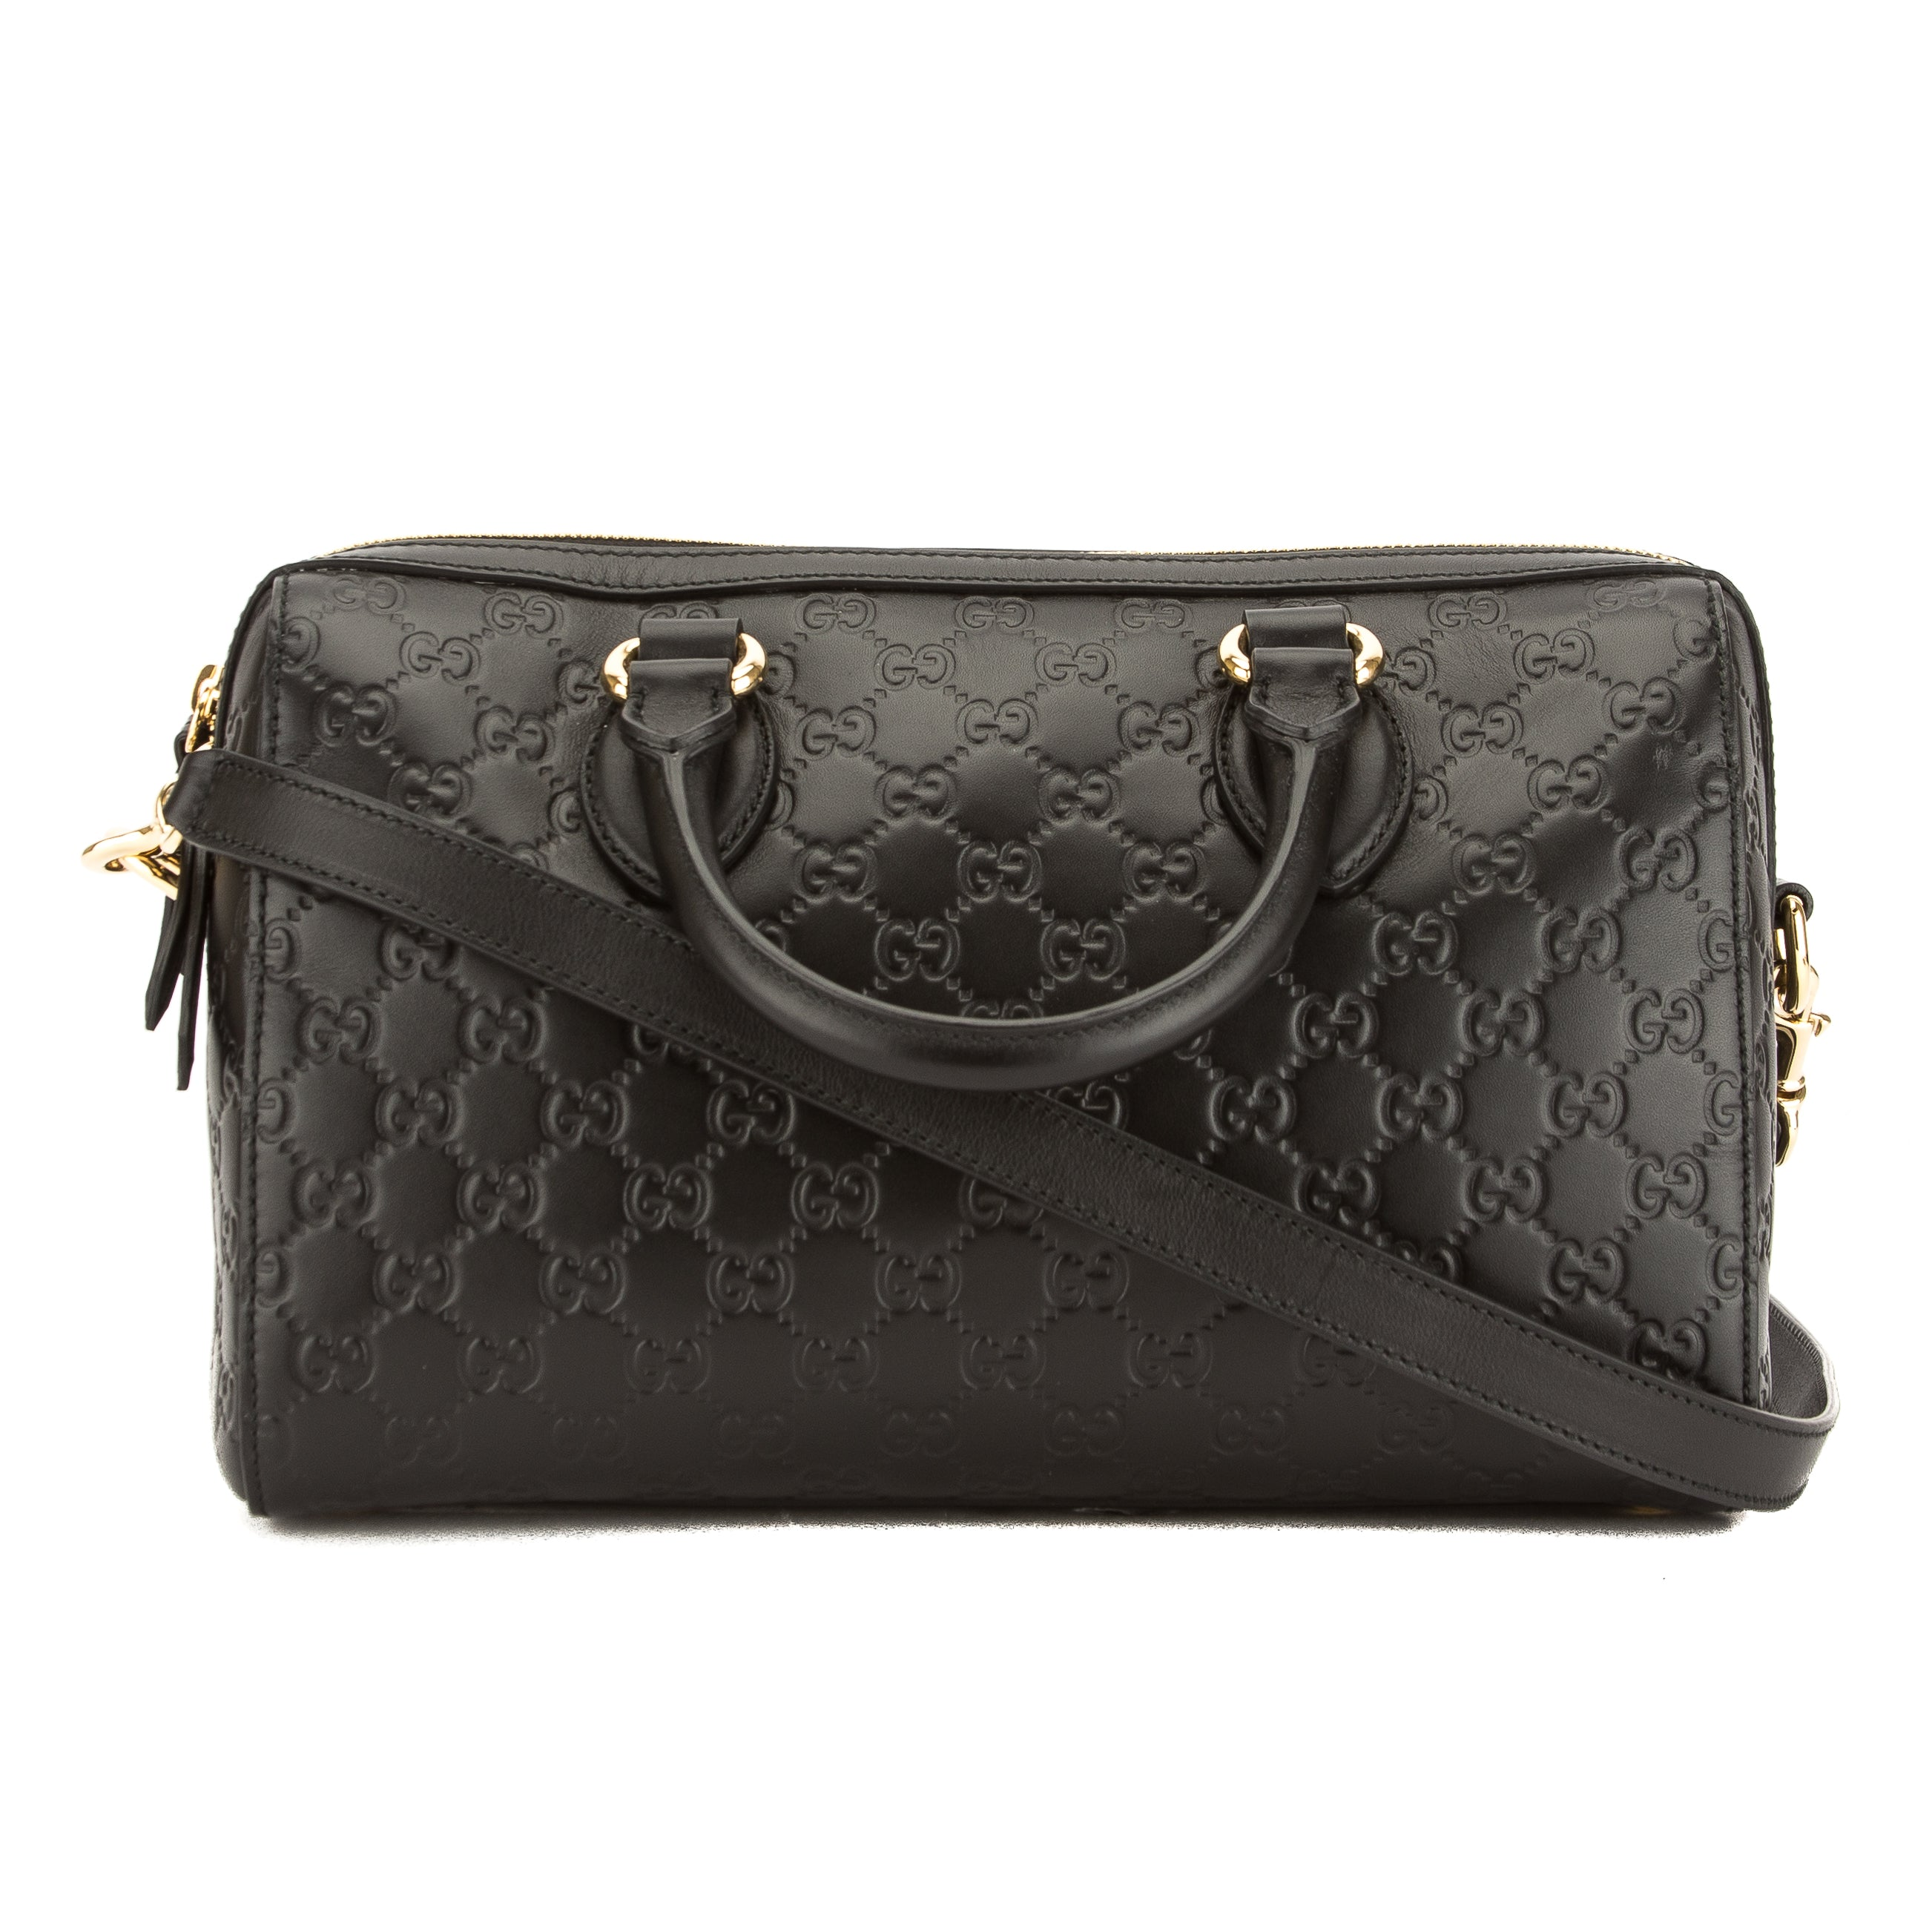 5d8b0f3c2e12 Gucci Black Soft Signature Leather Top Handle Bag (New with Tags ...